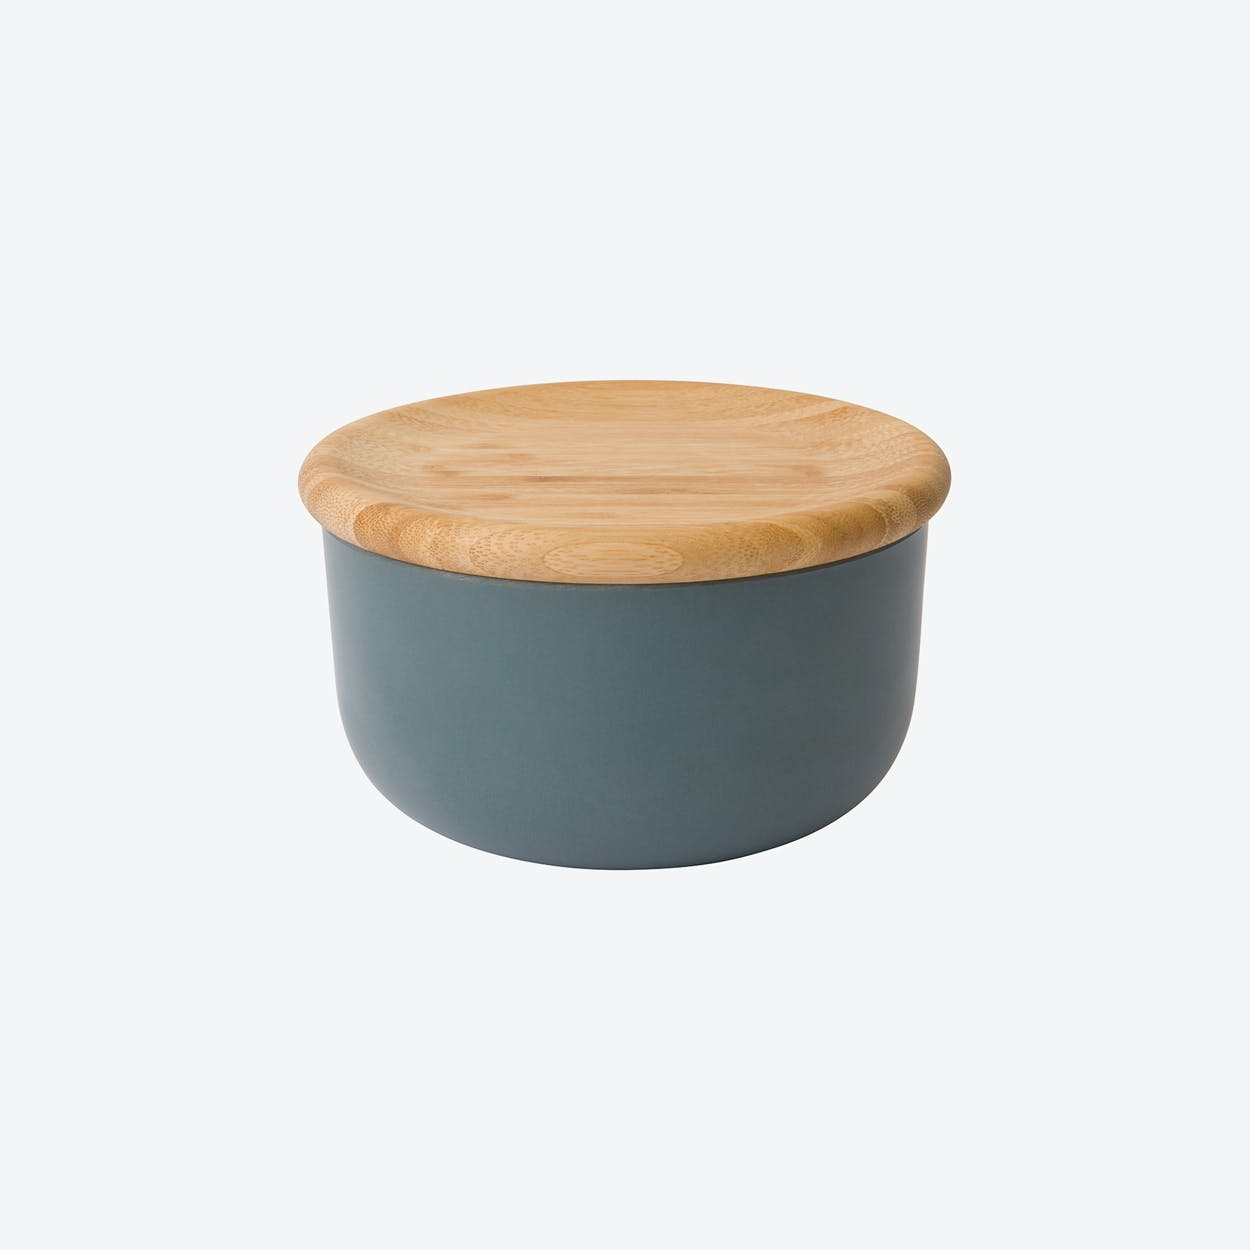 Canister w/ Bamboo Lid in Dark Grey, set of 4